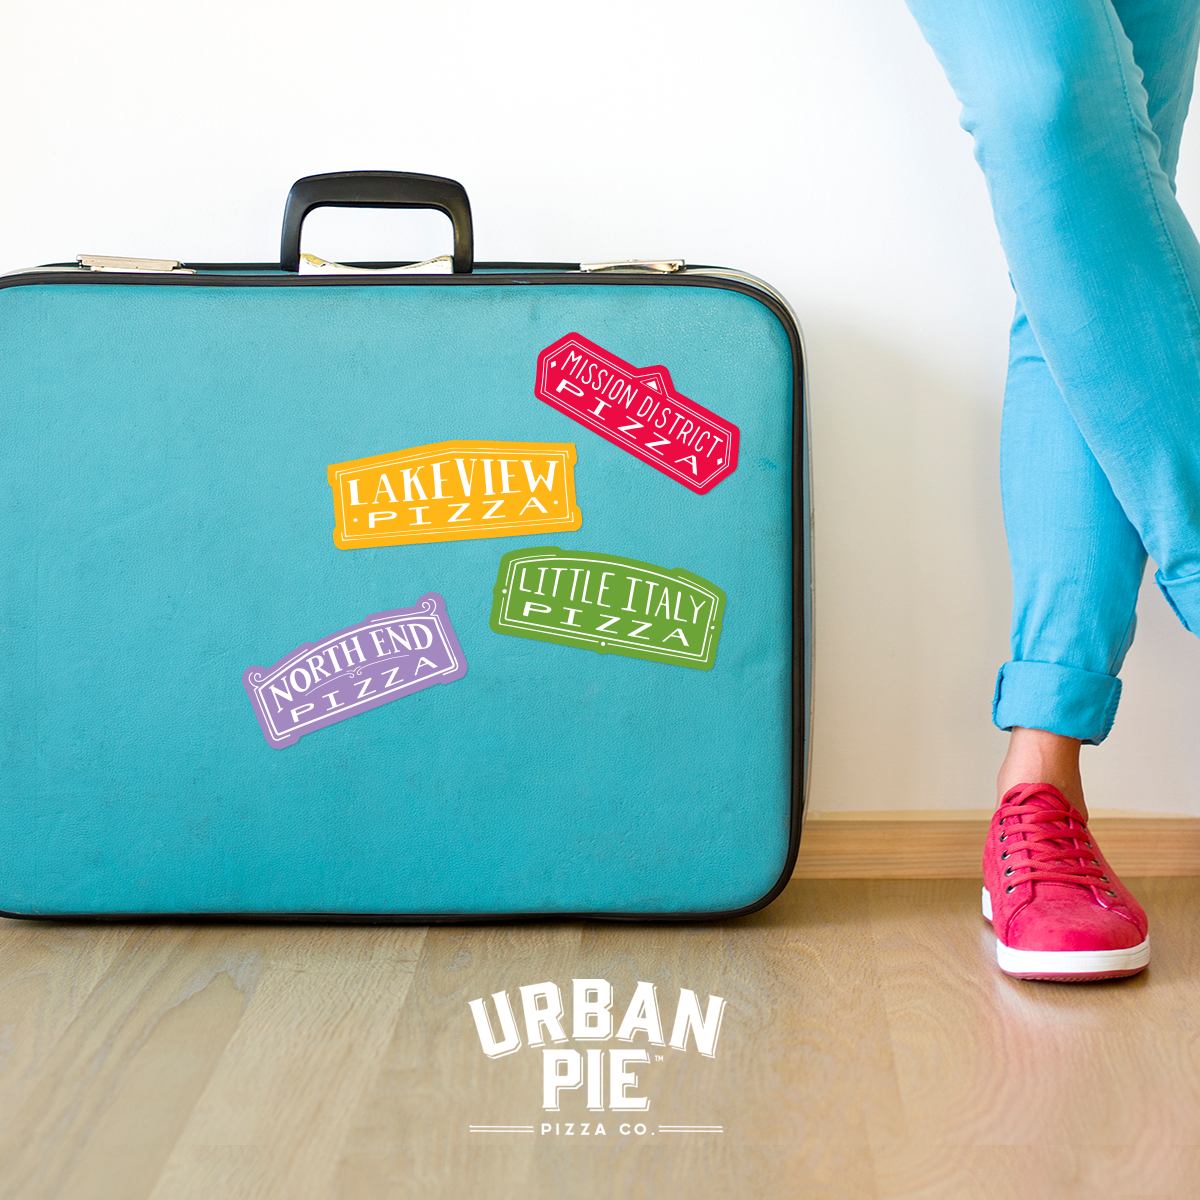 "A light blue suitcase sits on a light wood floor. On the suitcase there are multiple stickers: a red one reading ""Mission District Pizza,"" a purple one reading ""North End Pizza,"" a green one reading ""Little Italy Pizza,"" and a yellow one reading ""Lakeview Pizza."" Standing next to the suitcase is a pair of crossed legs wearing light denim and red tennis shoes."